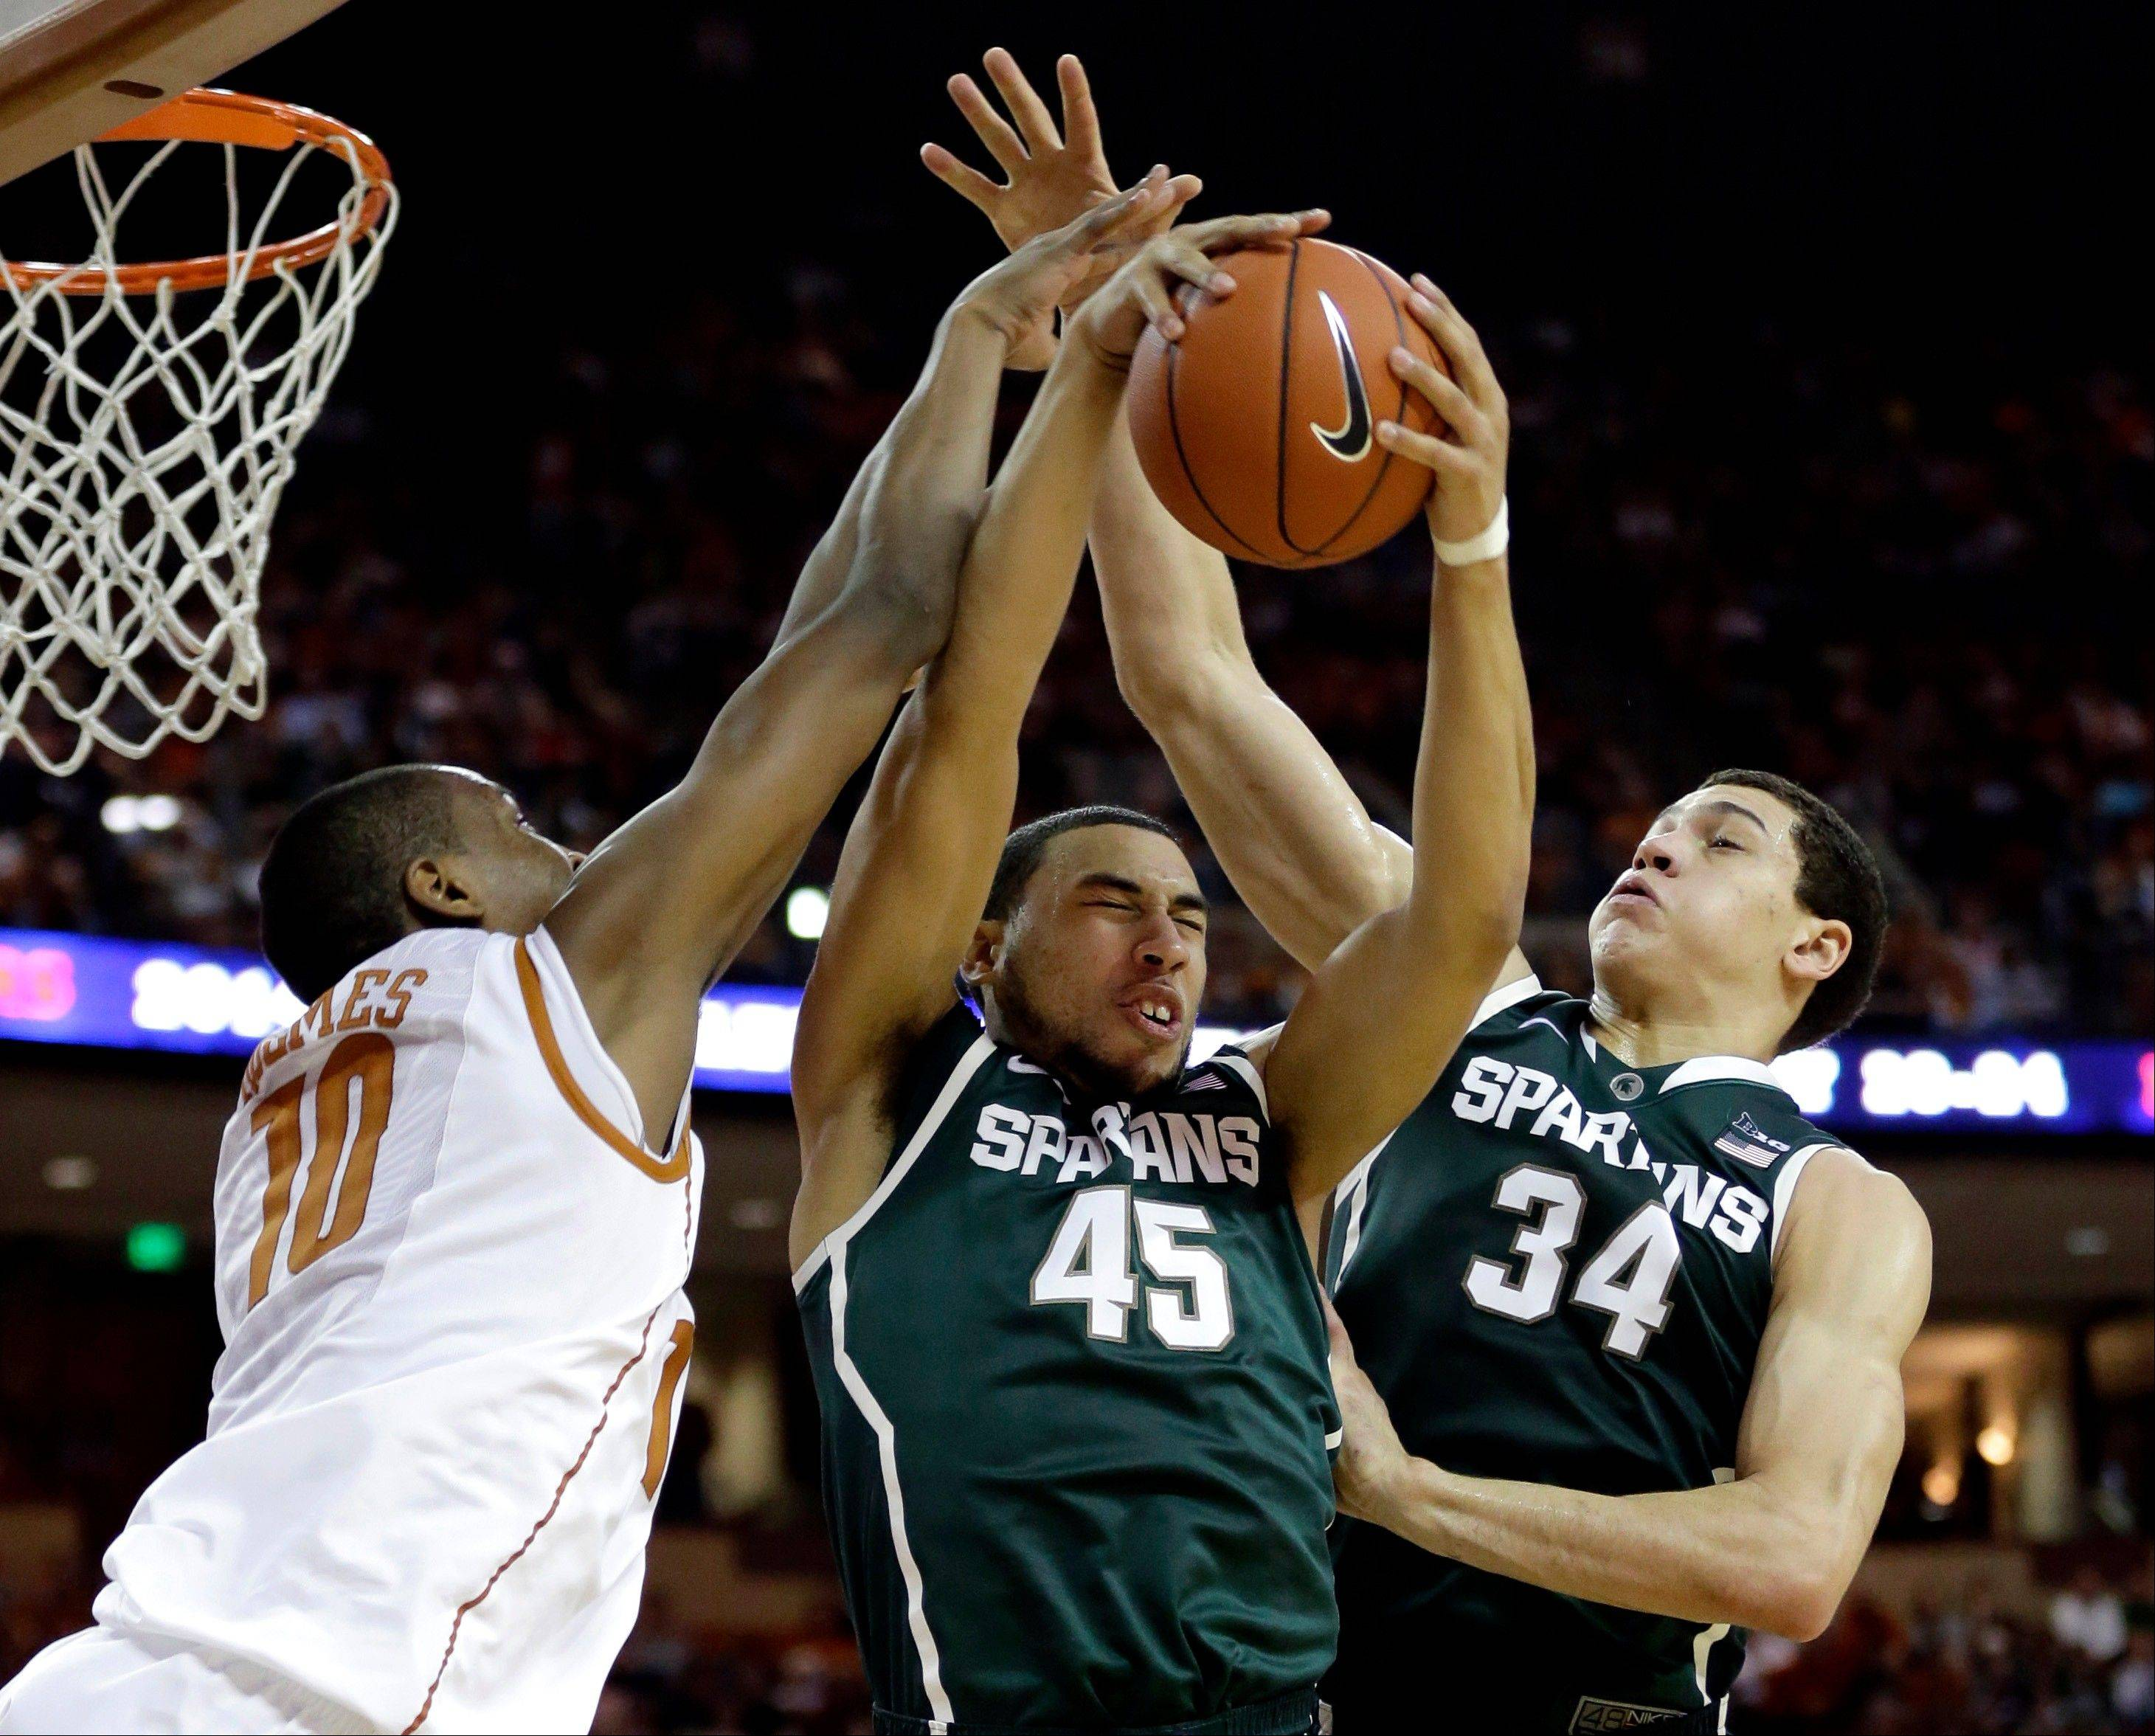 Michigan State's Denzel Valentine (45) pulls in a rebound between teammate Gavin Schilling and Texas' Jonathan Holmes during the first half of Saturday's game in Austin, Texas.